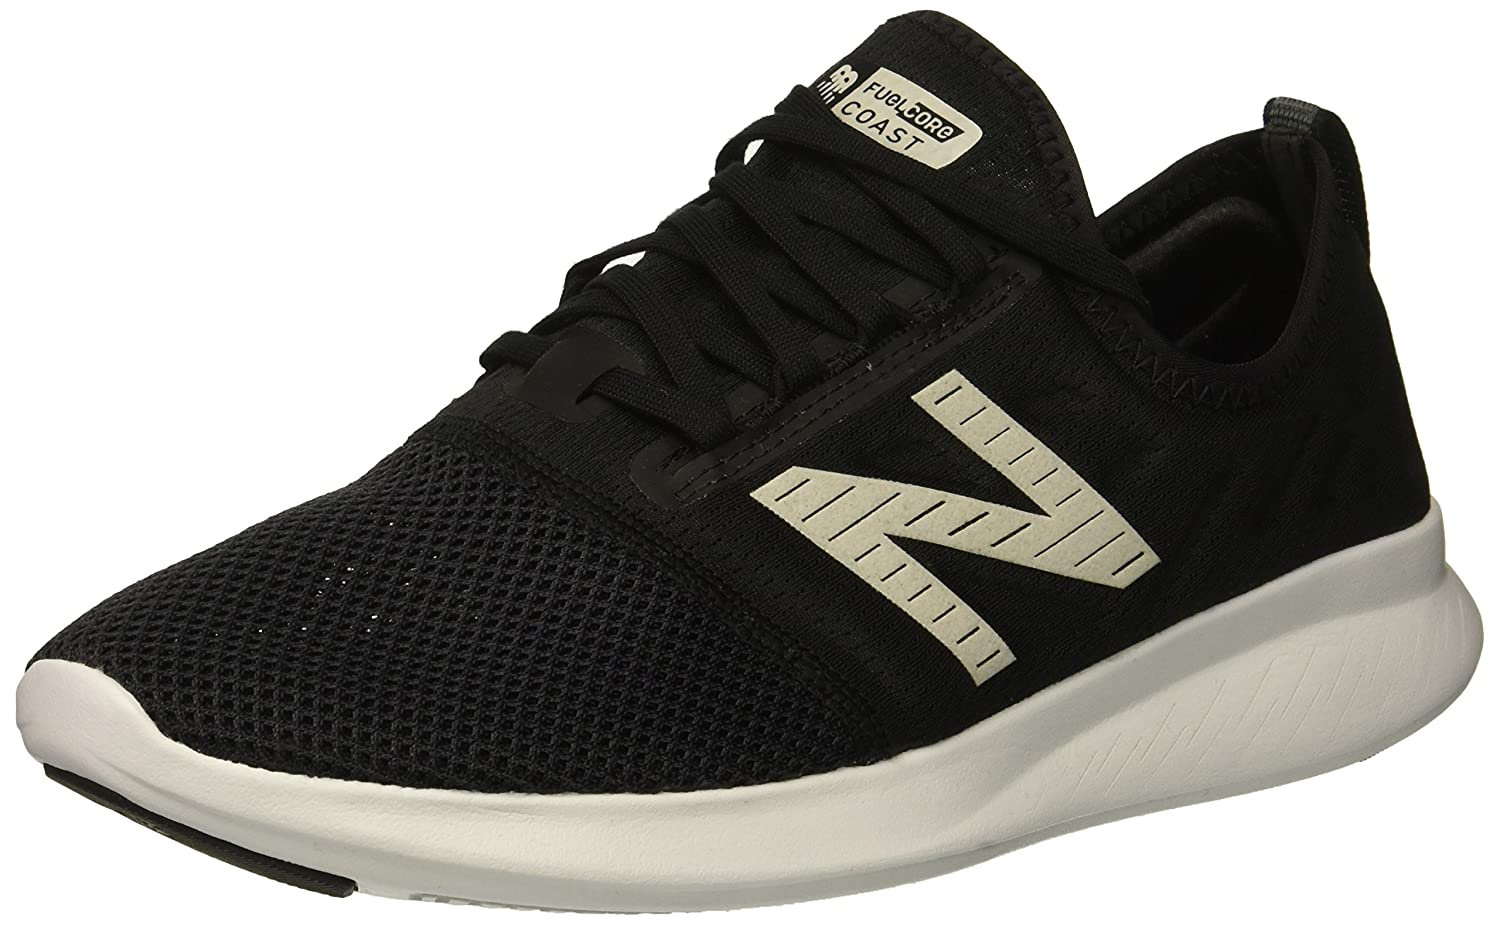 New Balance Women's Coast V4 FuelCore Running Shoe B075R3RB1V 8.5 B(M) US|Black/White